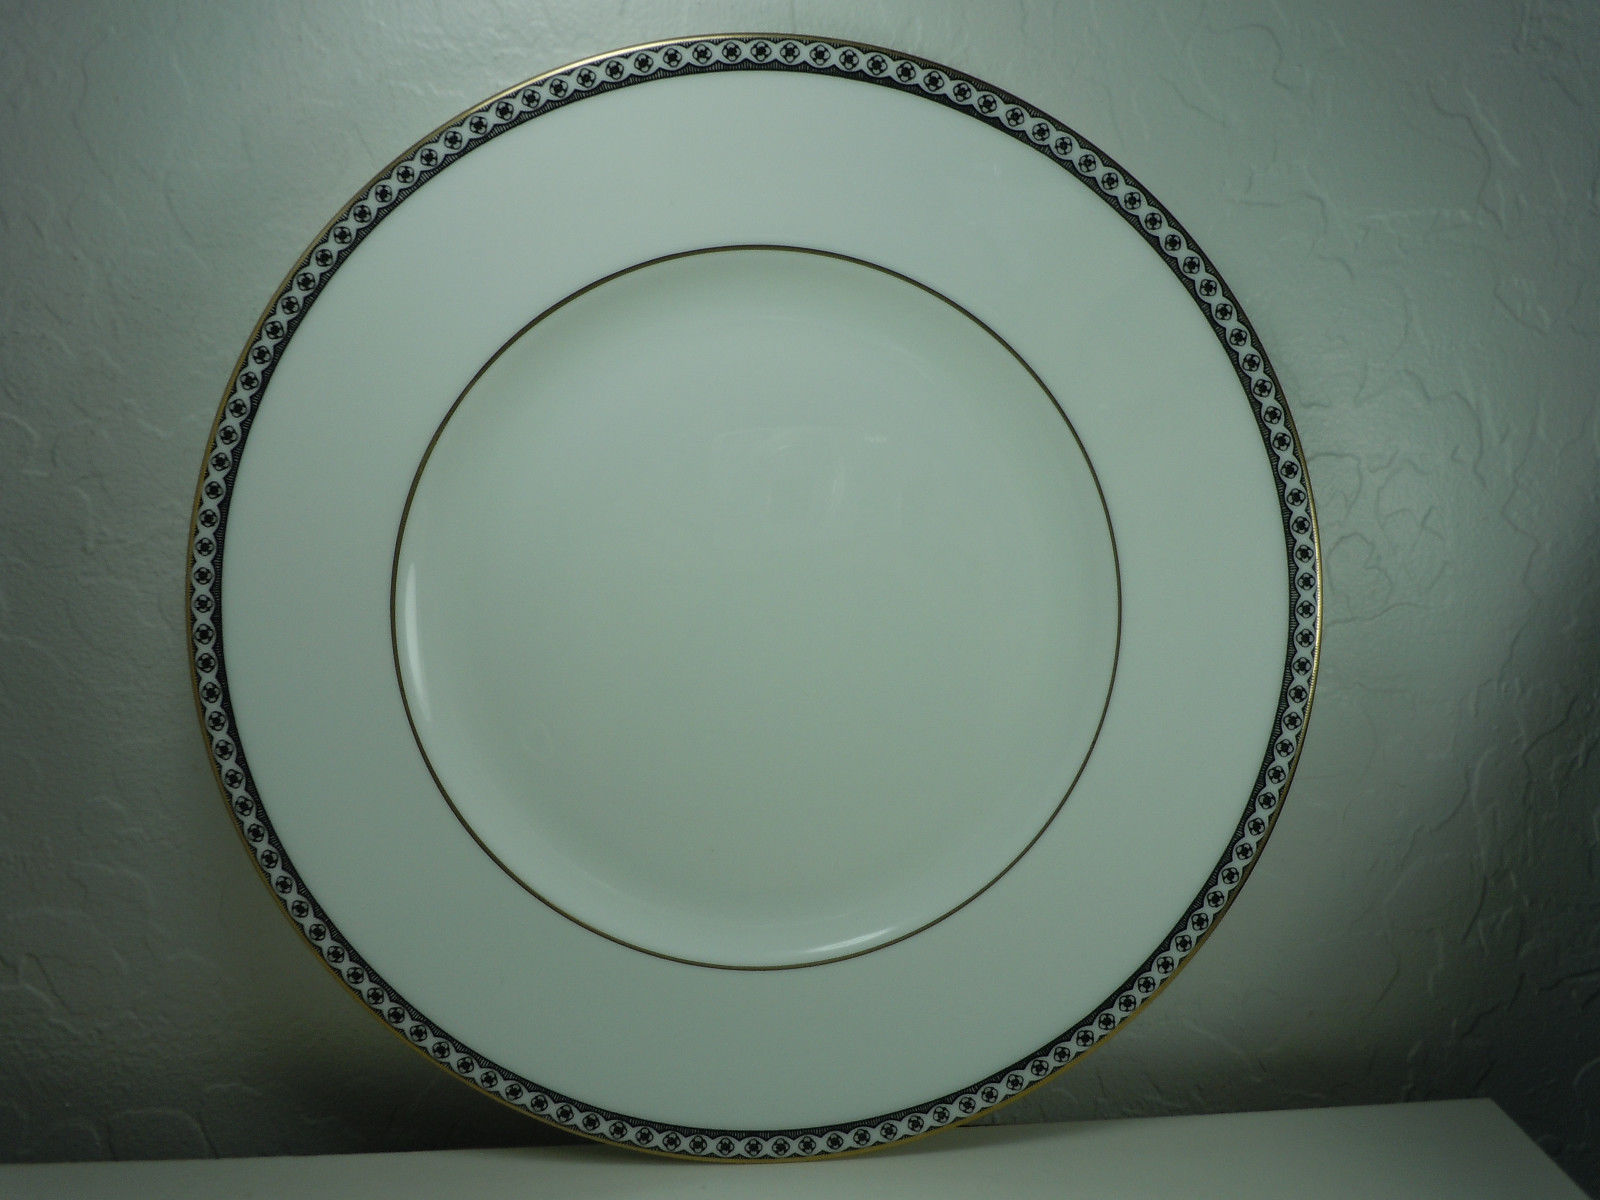 Wedgwood Ulander Black Dinner Plate